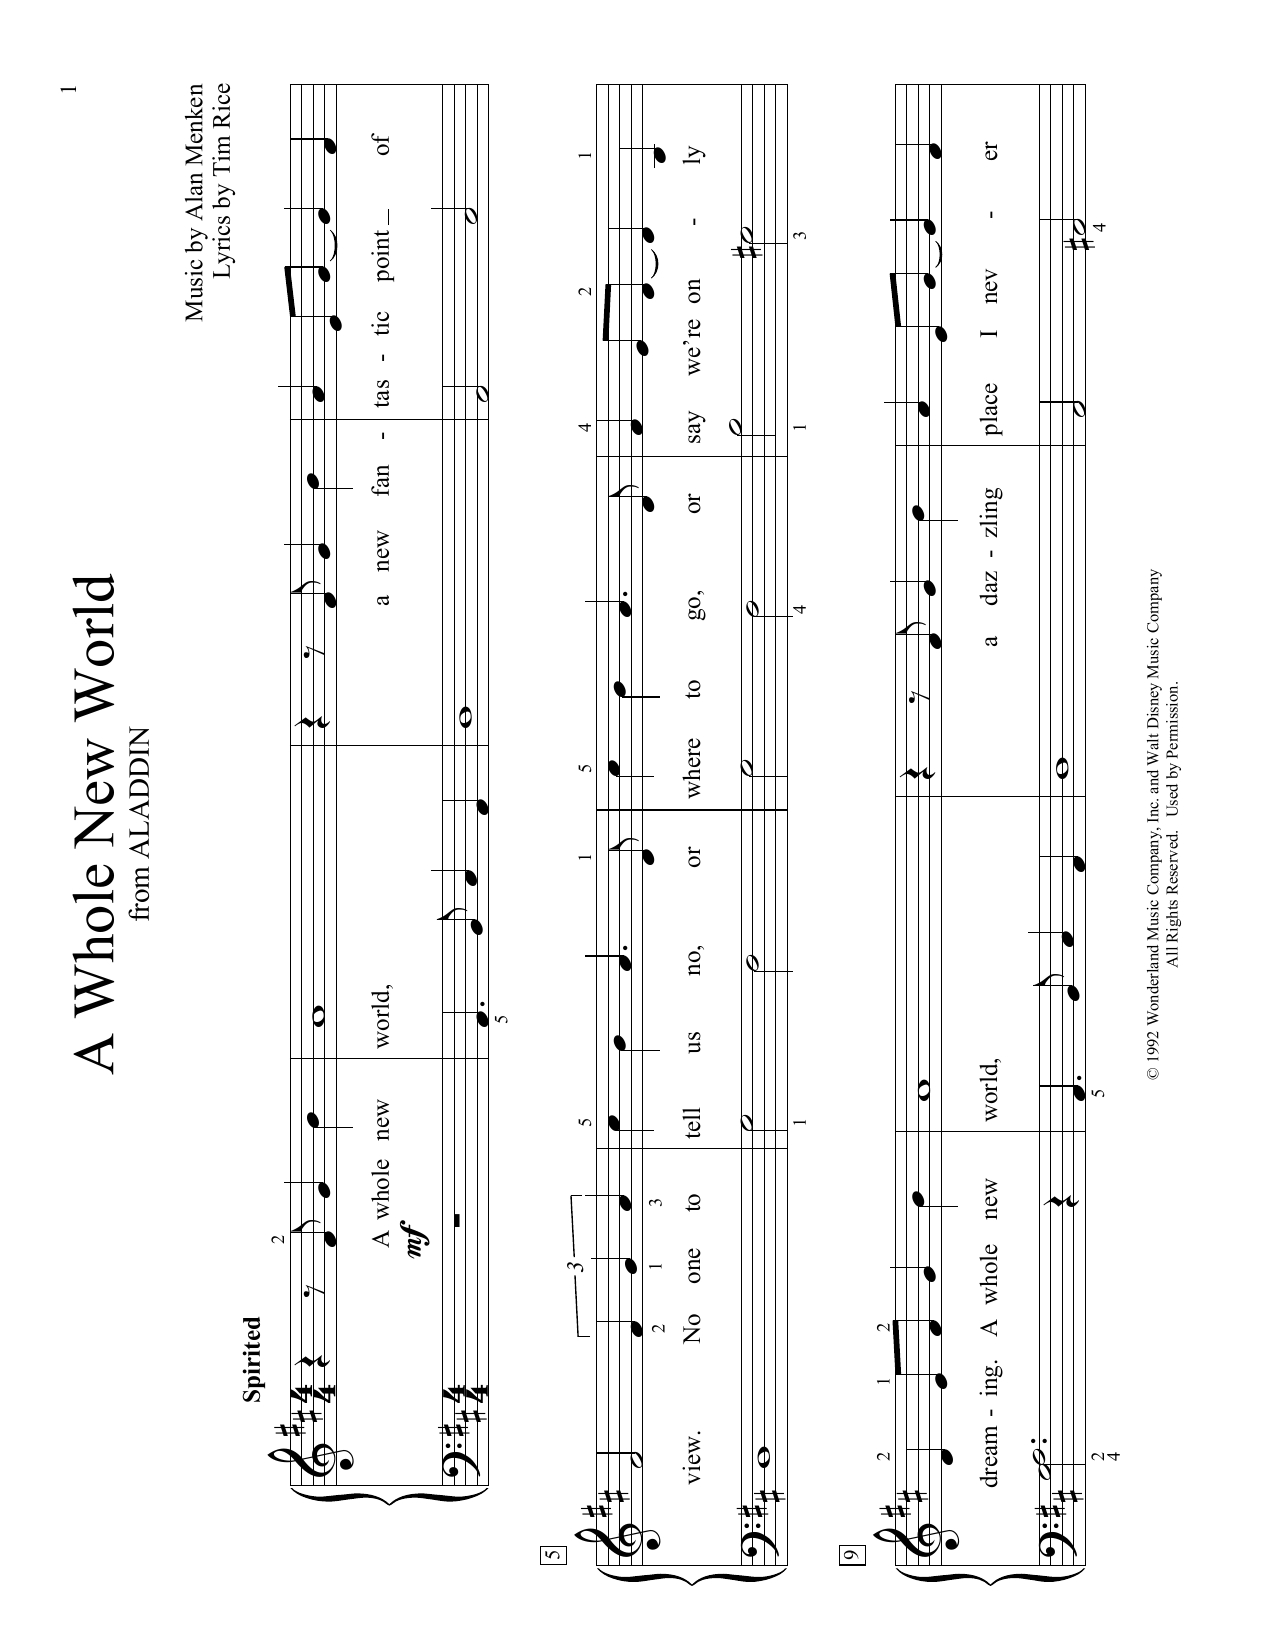 A Whole New World Chords Alan Menken A Whole New World From Aladdin Arr Christopher Hussey Sheet Music Notes Chords Download Printable Educational Piano Sku